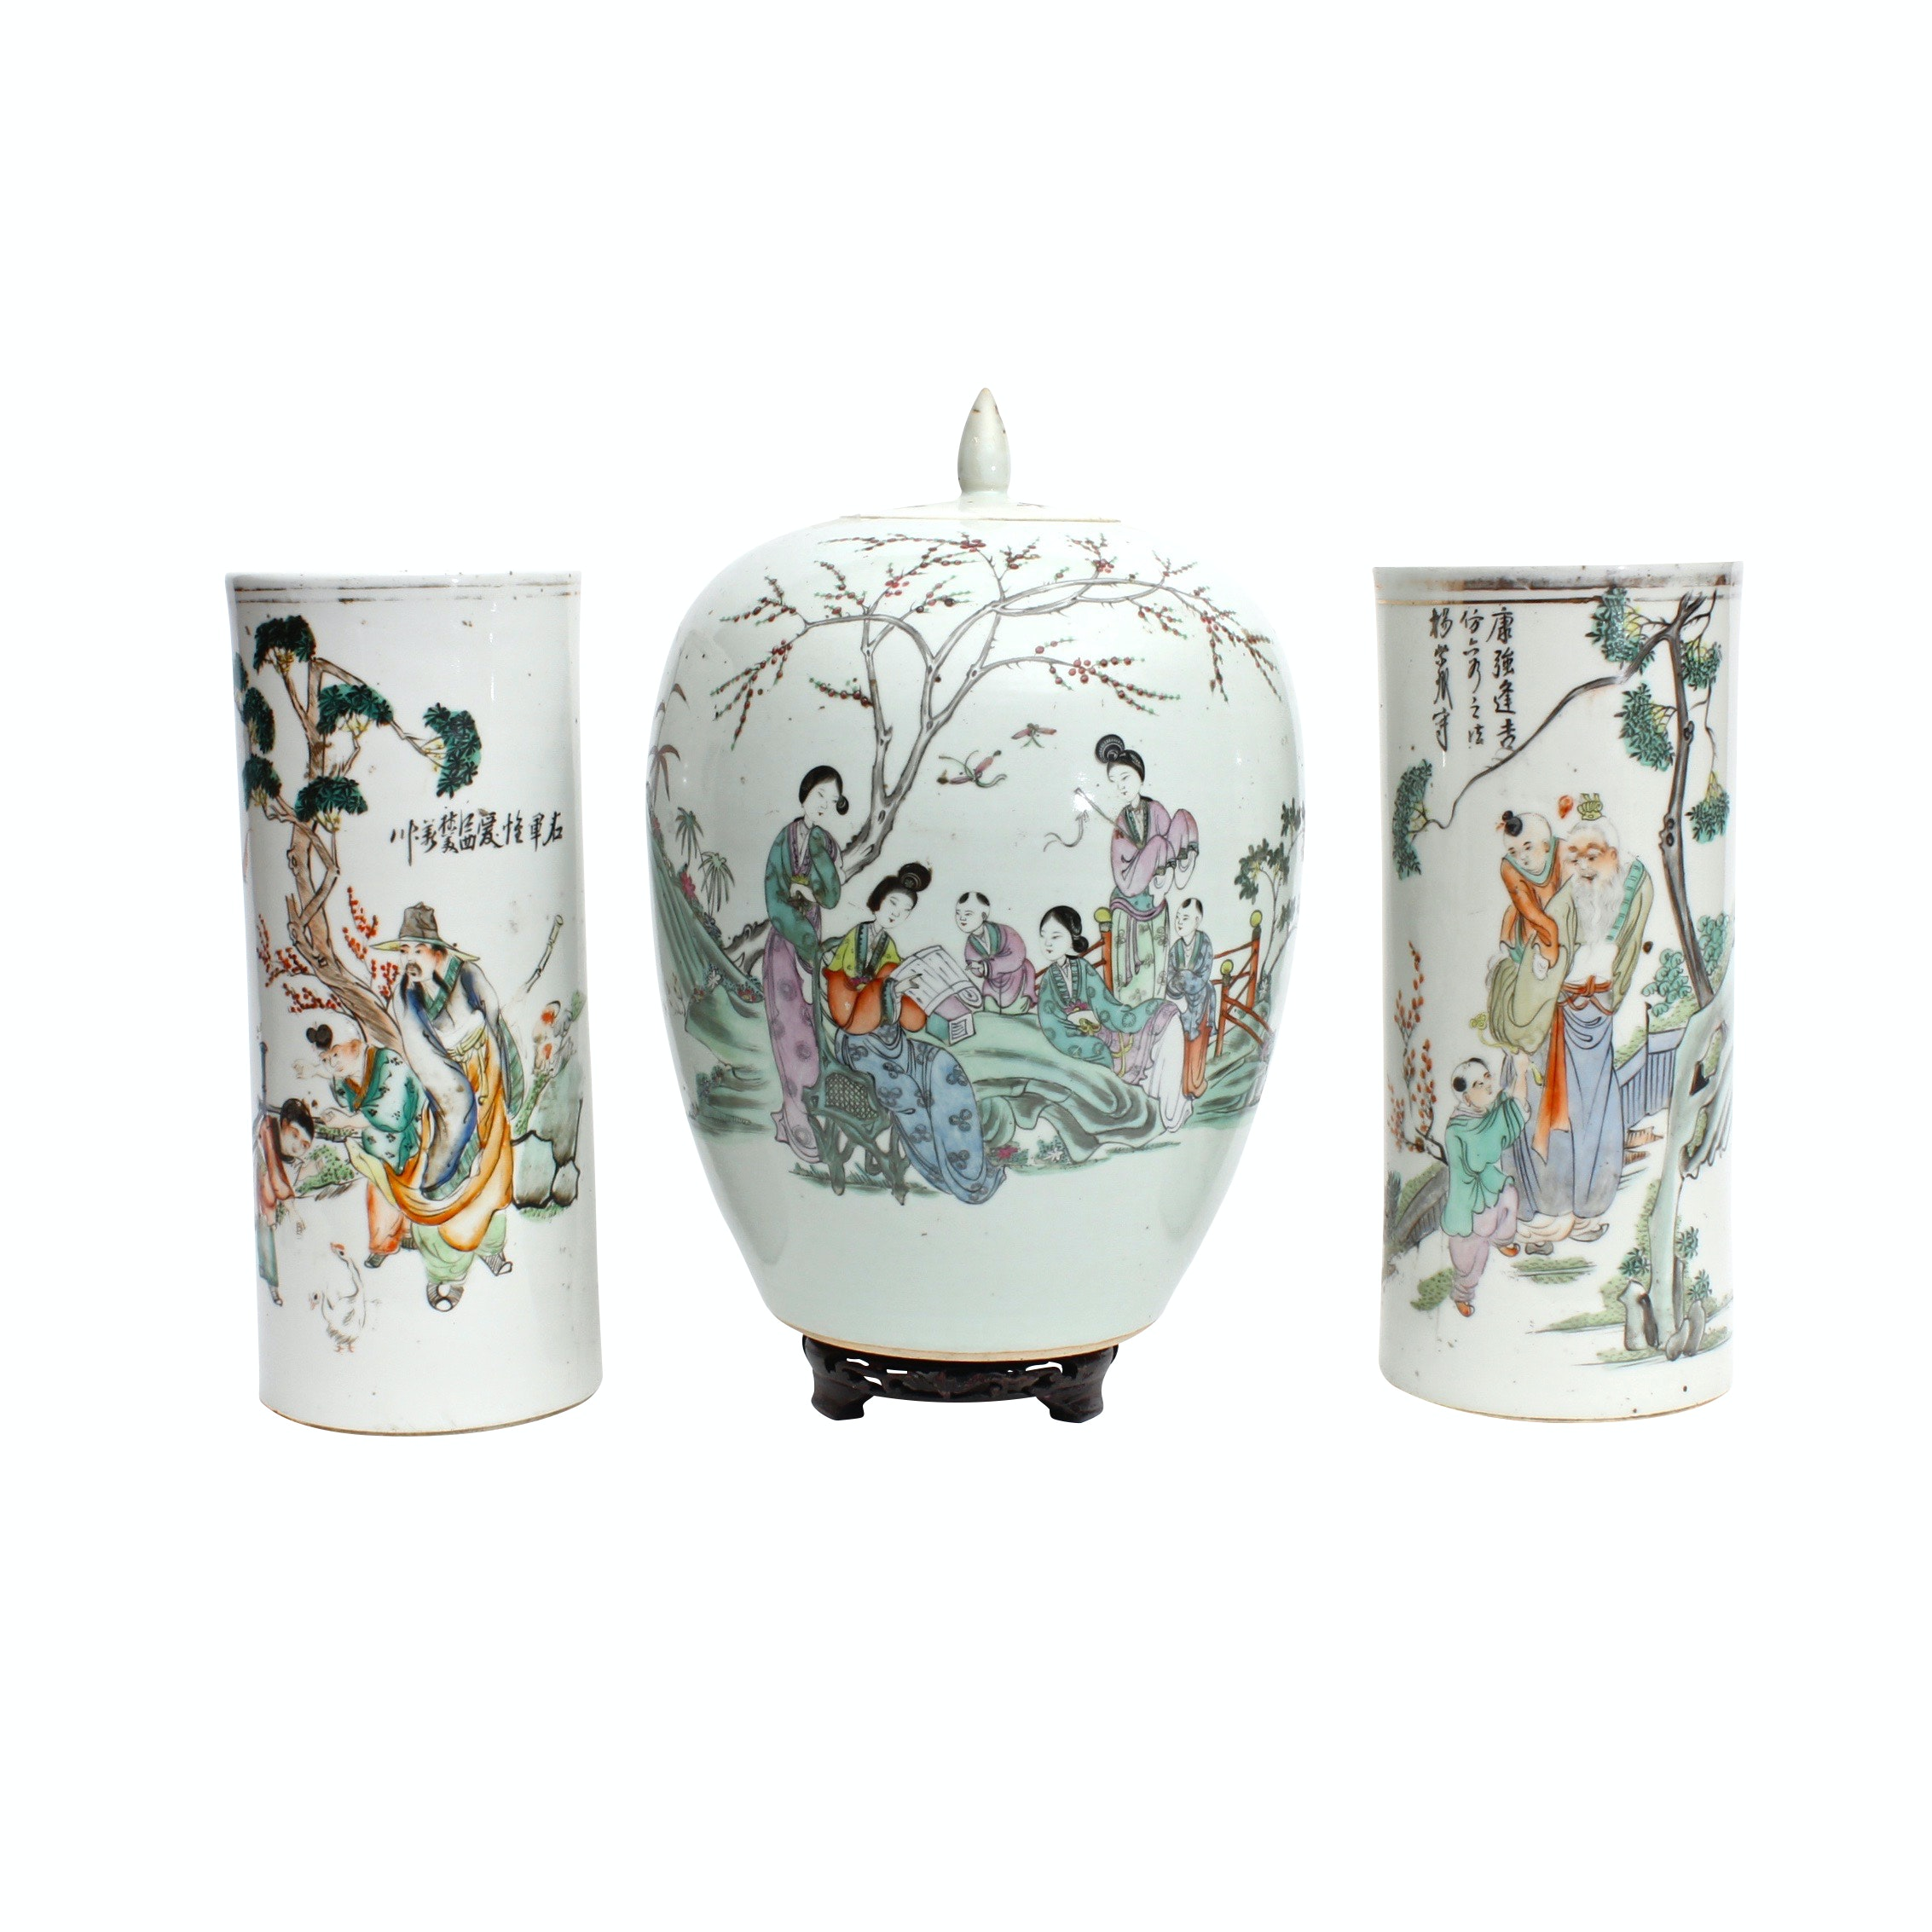 Chinese Porcelain Vases and Urn, Republic Period